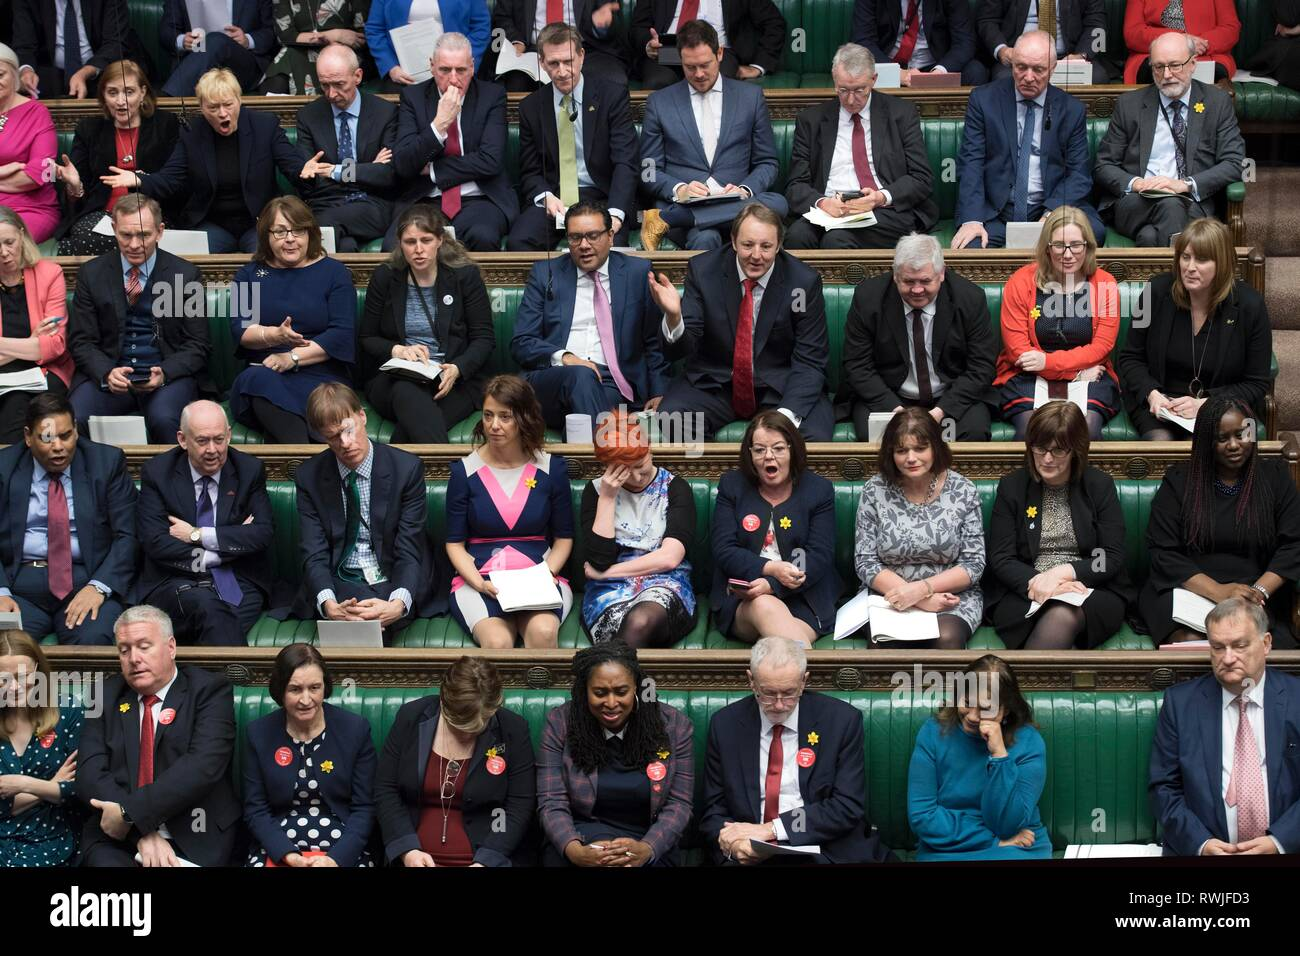 London, UK. 6th Mar, 2019. Photo taken on March 6, 2019 shows the scene of the Prime Minister's Questions in the House of Commons in London, Britain. Credit: UK Parliament/Jessica Taylor/Xinhua/Alamy Live News - Stock Image